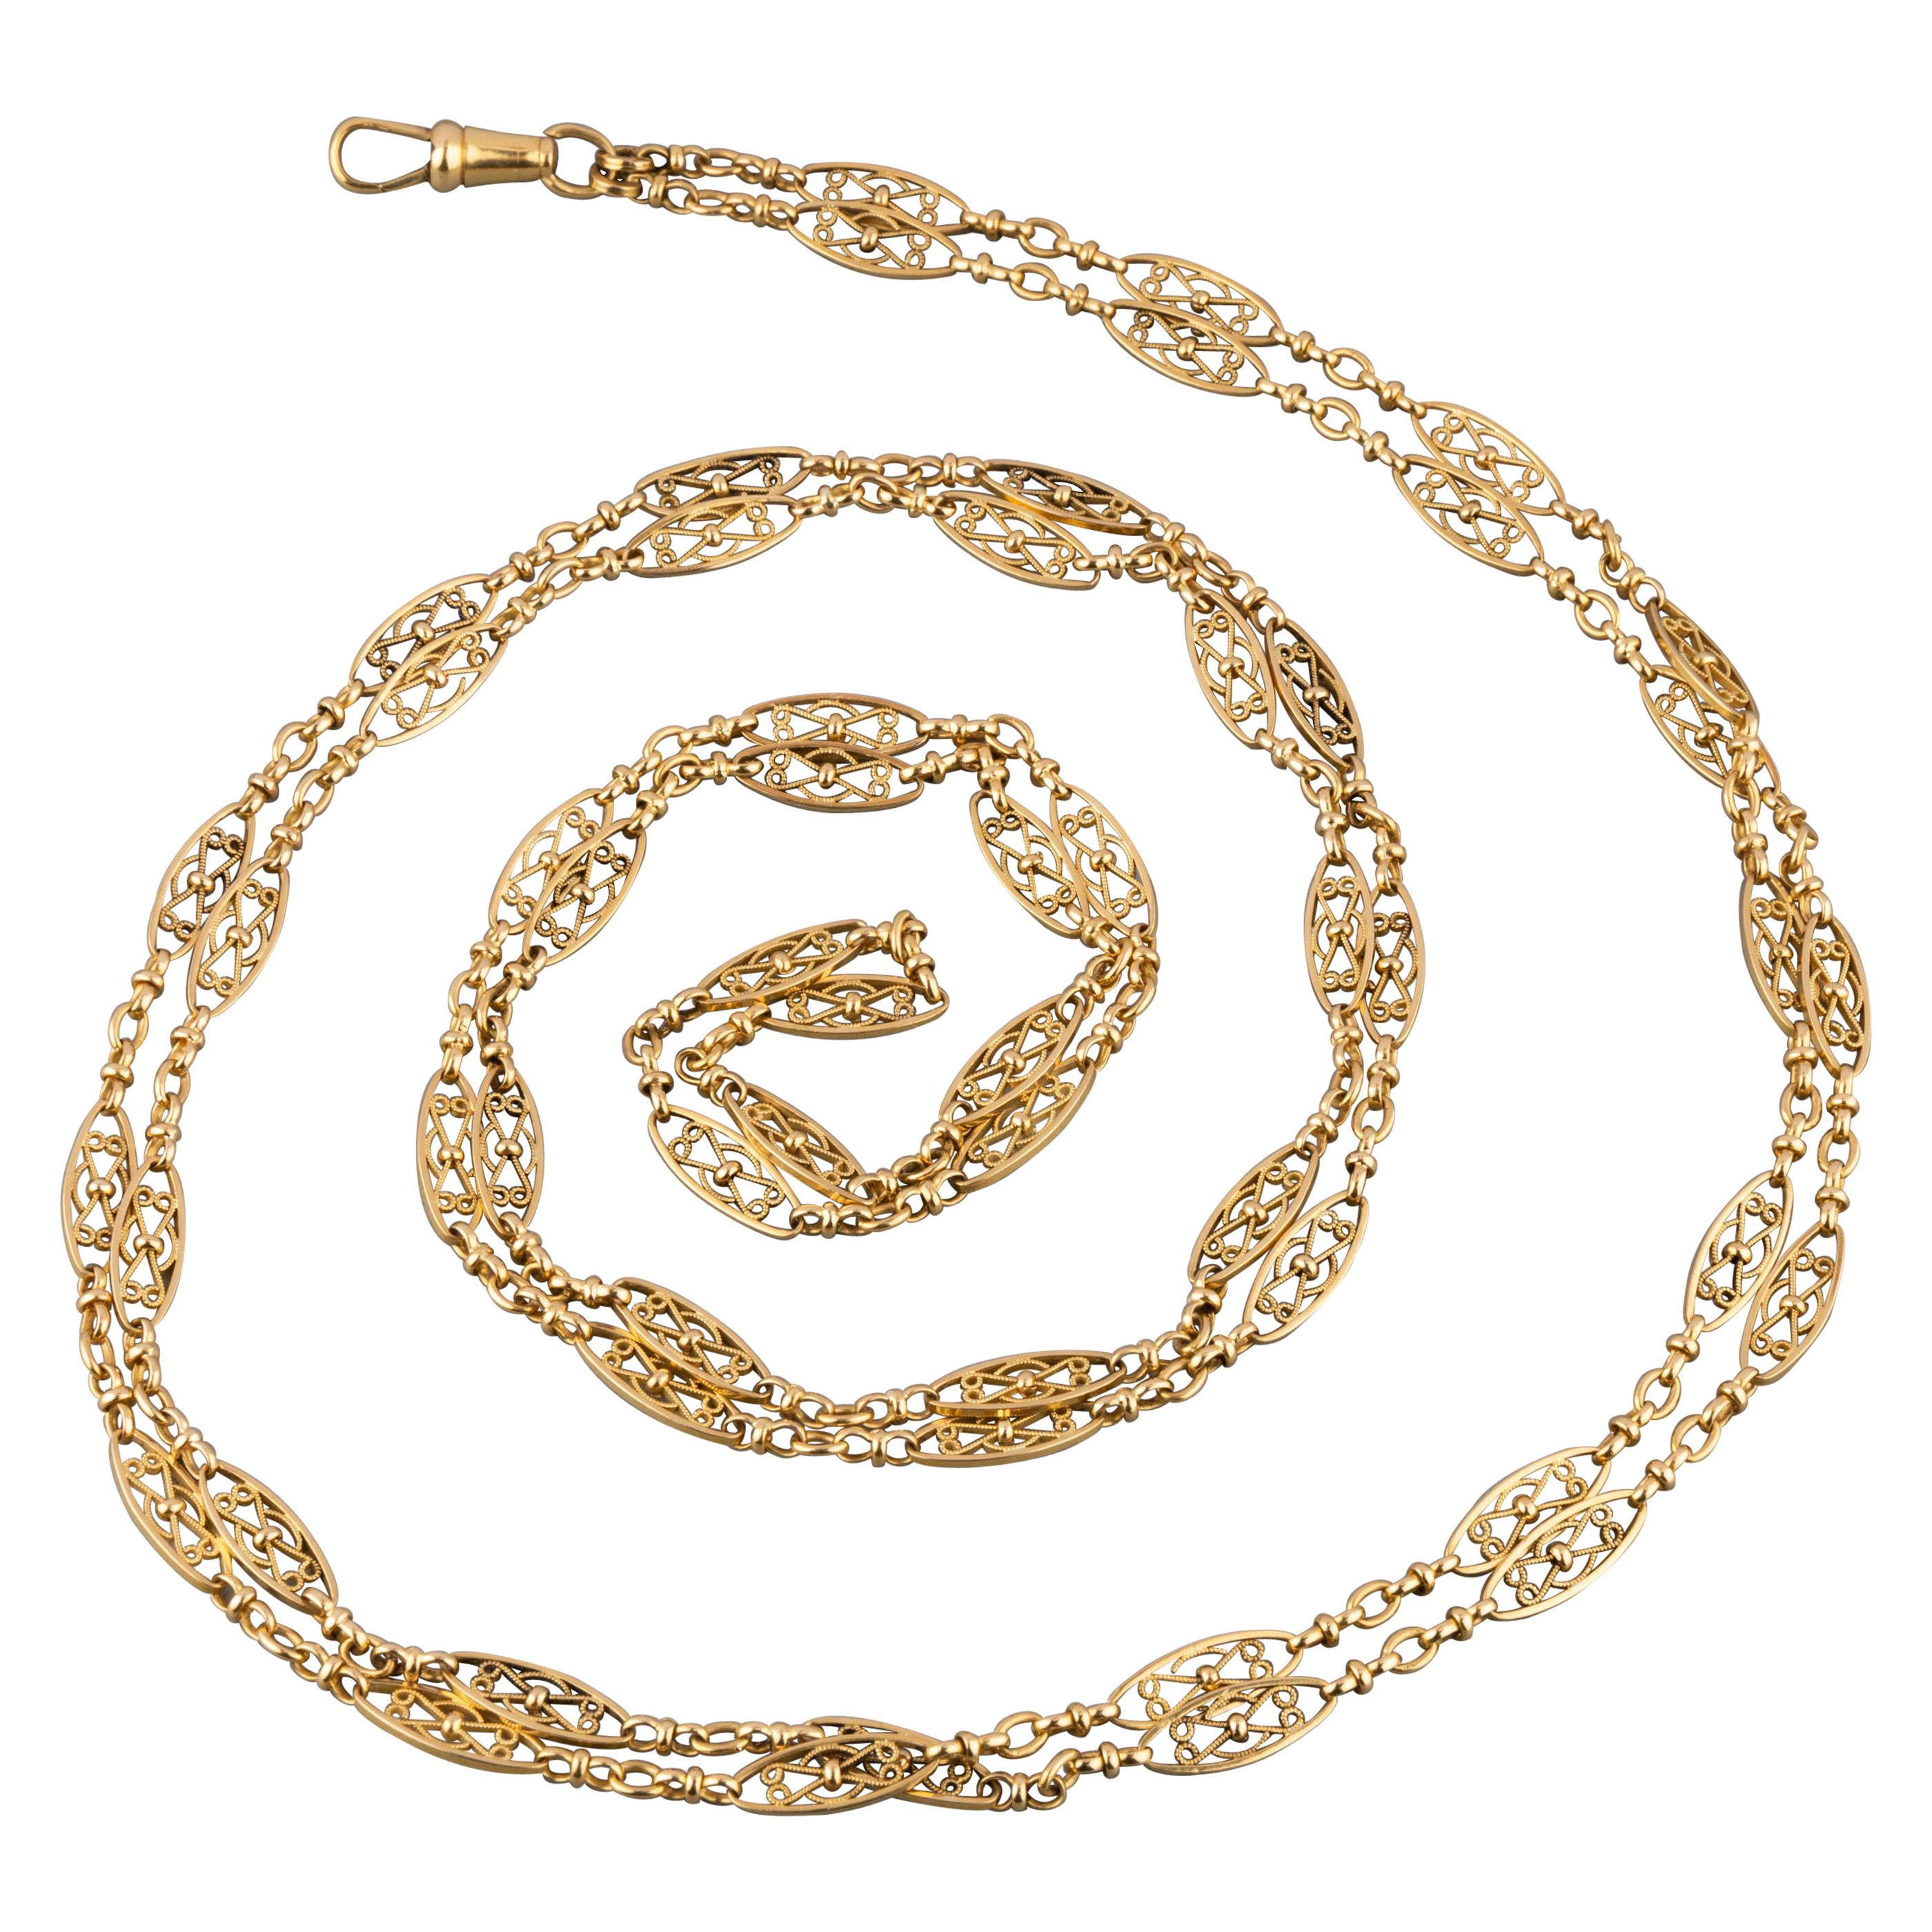 Antique Gold French Long Chain